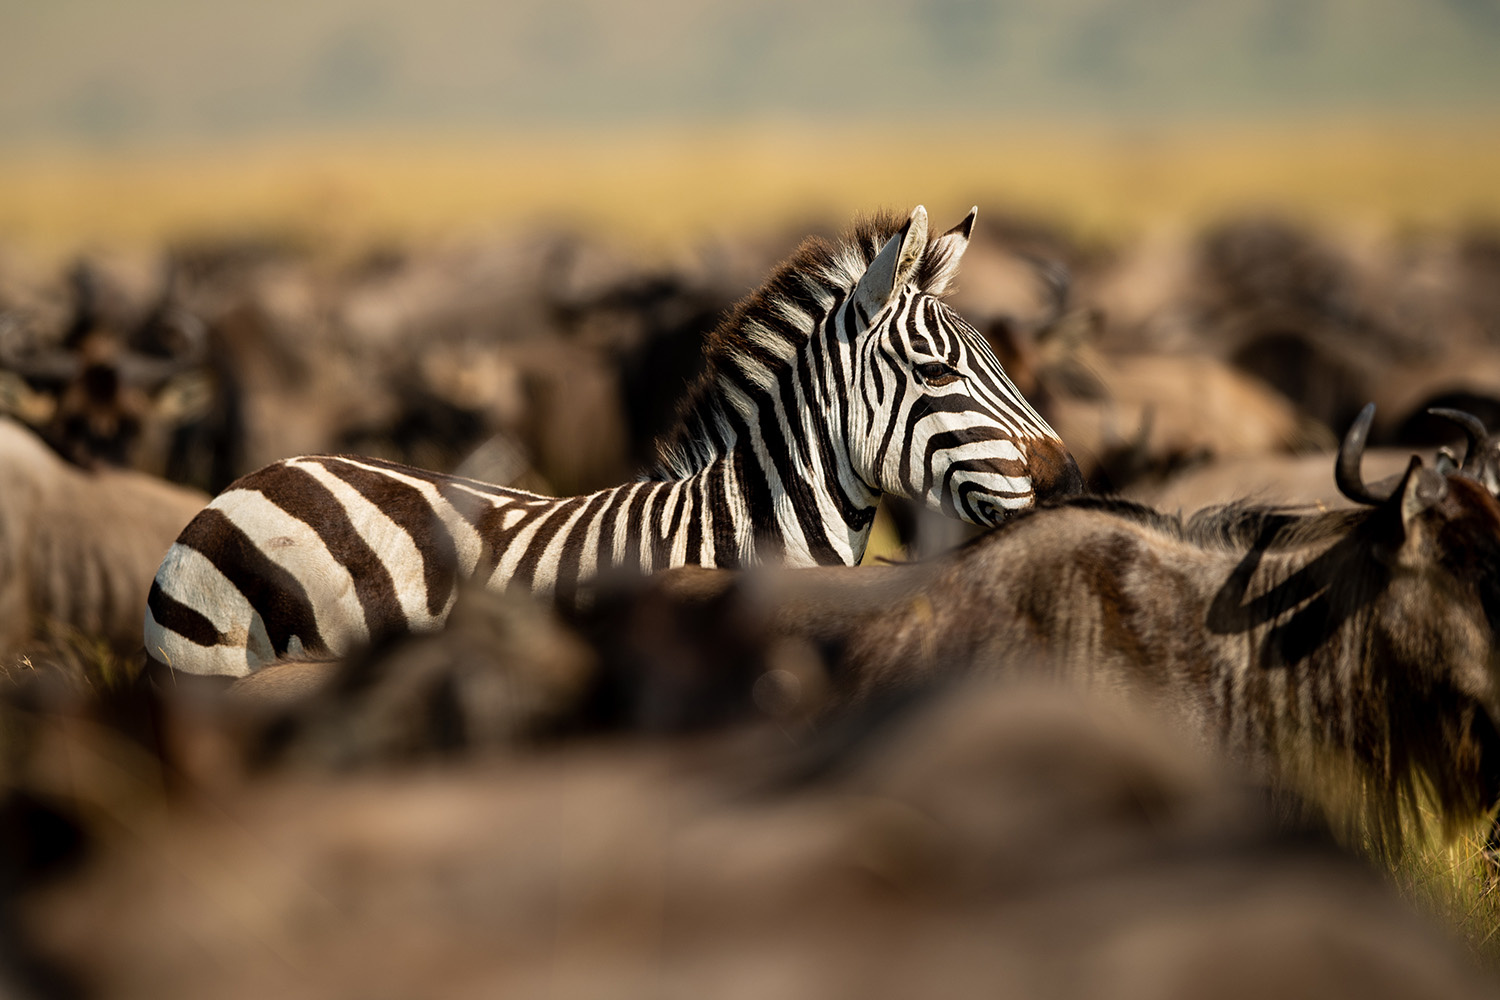 Zebra in the great migration giving contrast